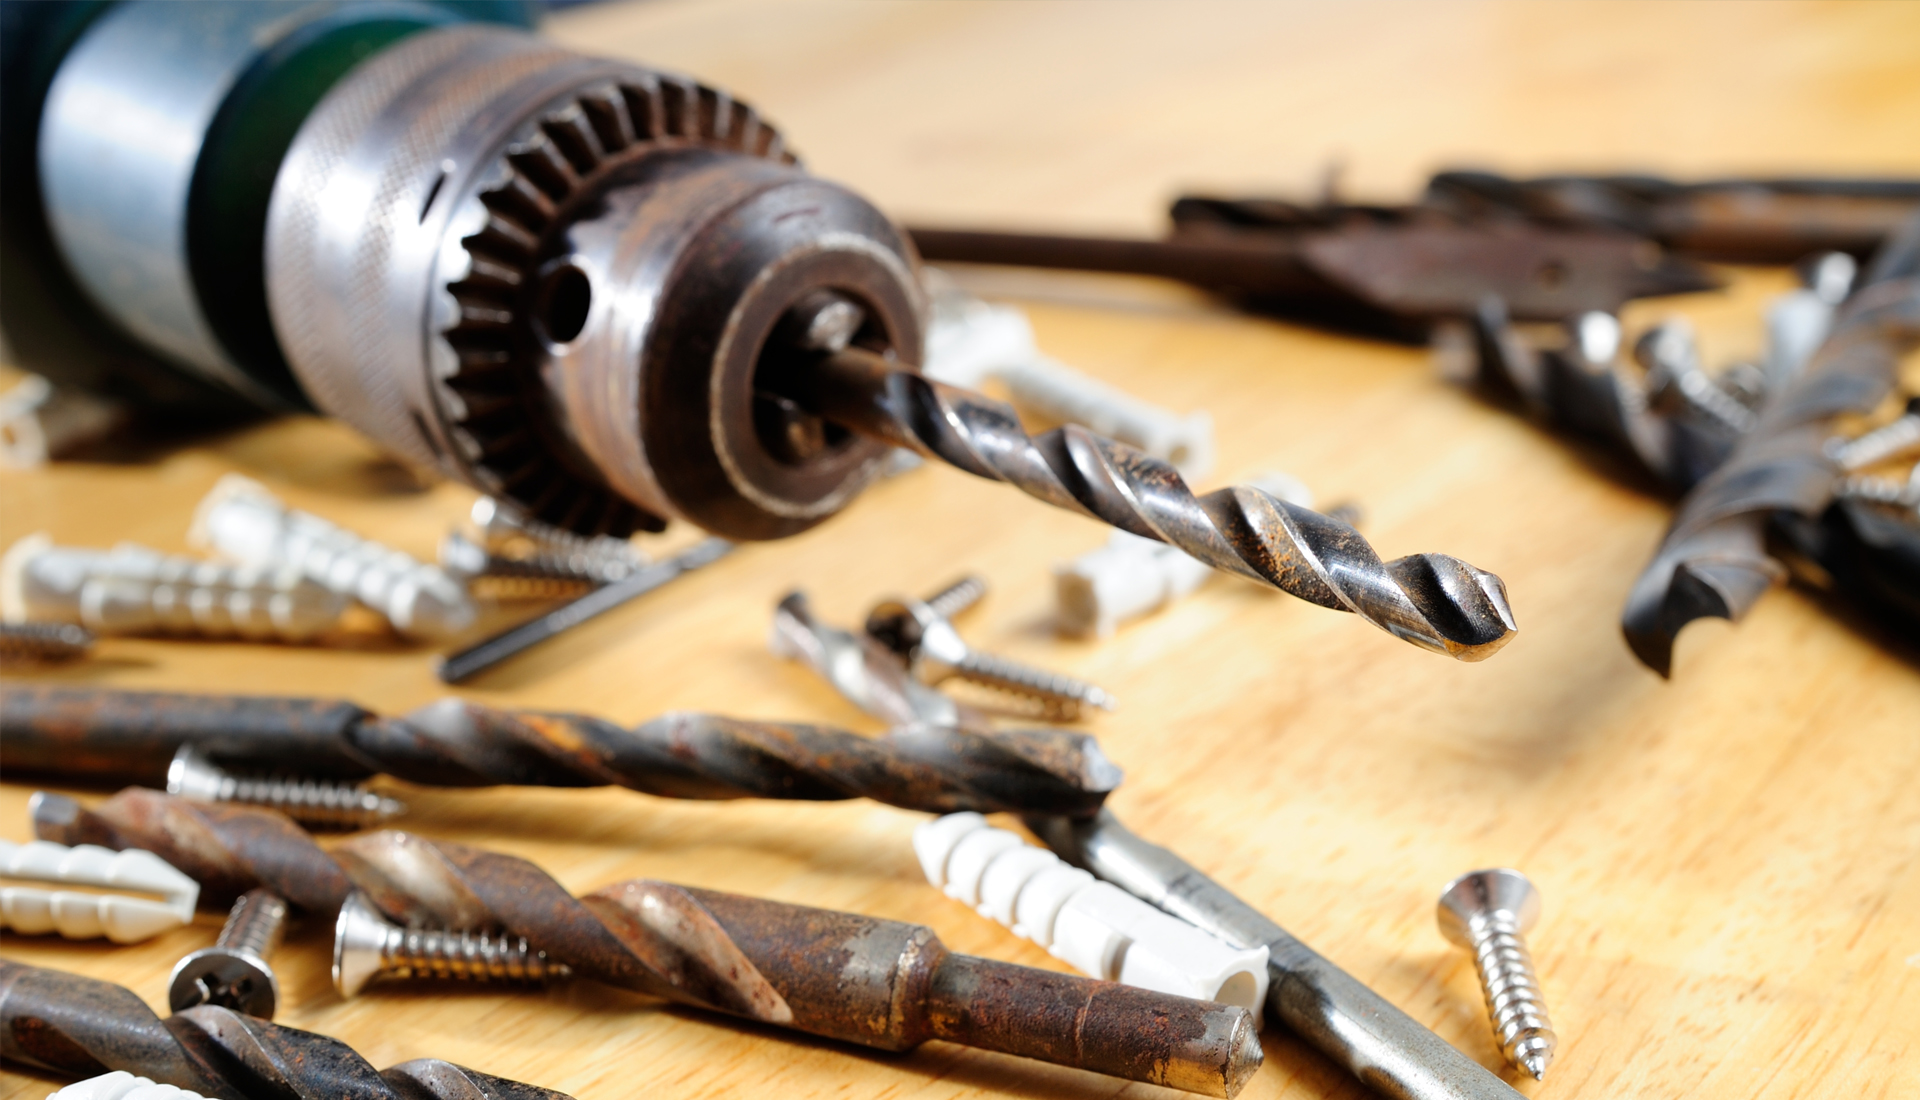 Can You Purchase High Quality Power Tools Through Online ...